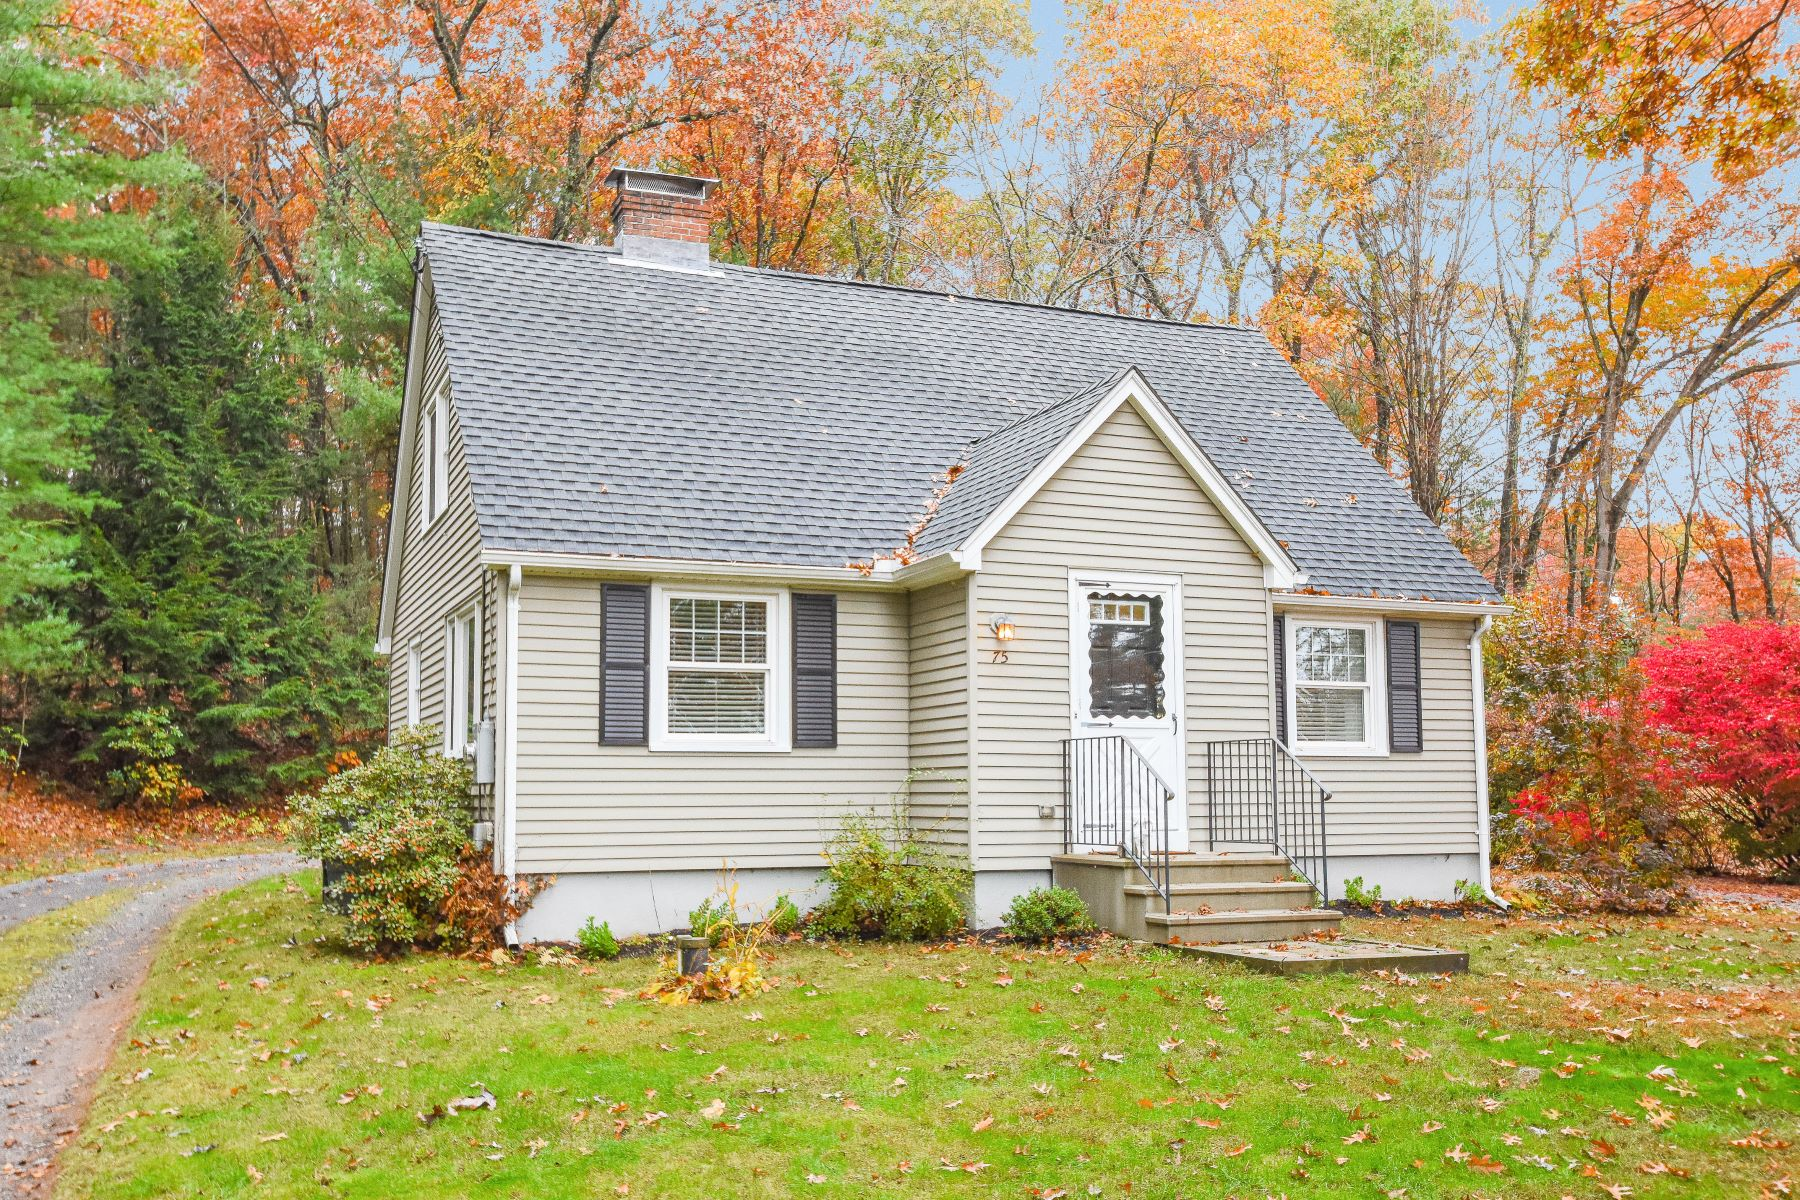 Single Family Homes for Sale at Granby, Connecticut 06035 United States